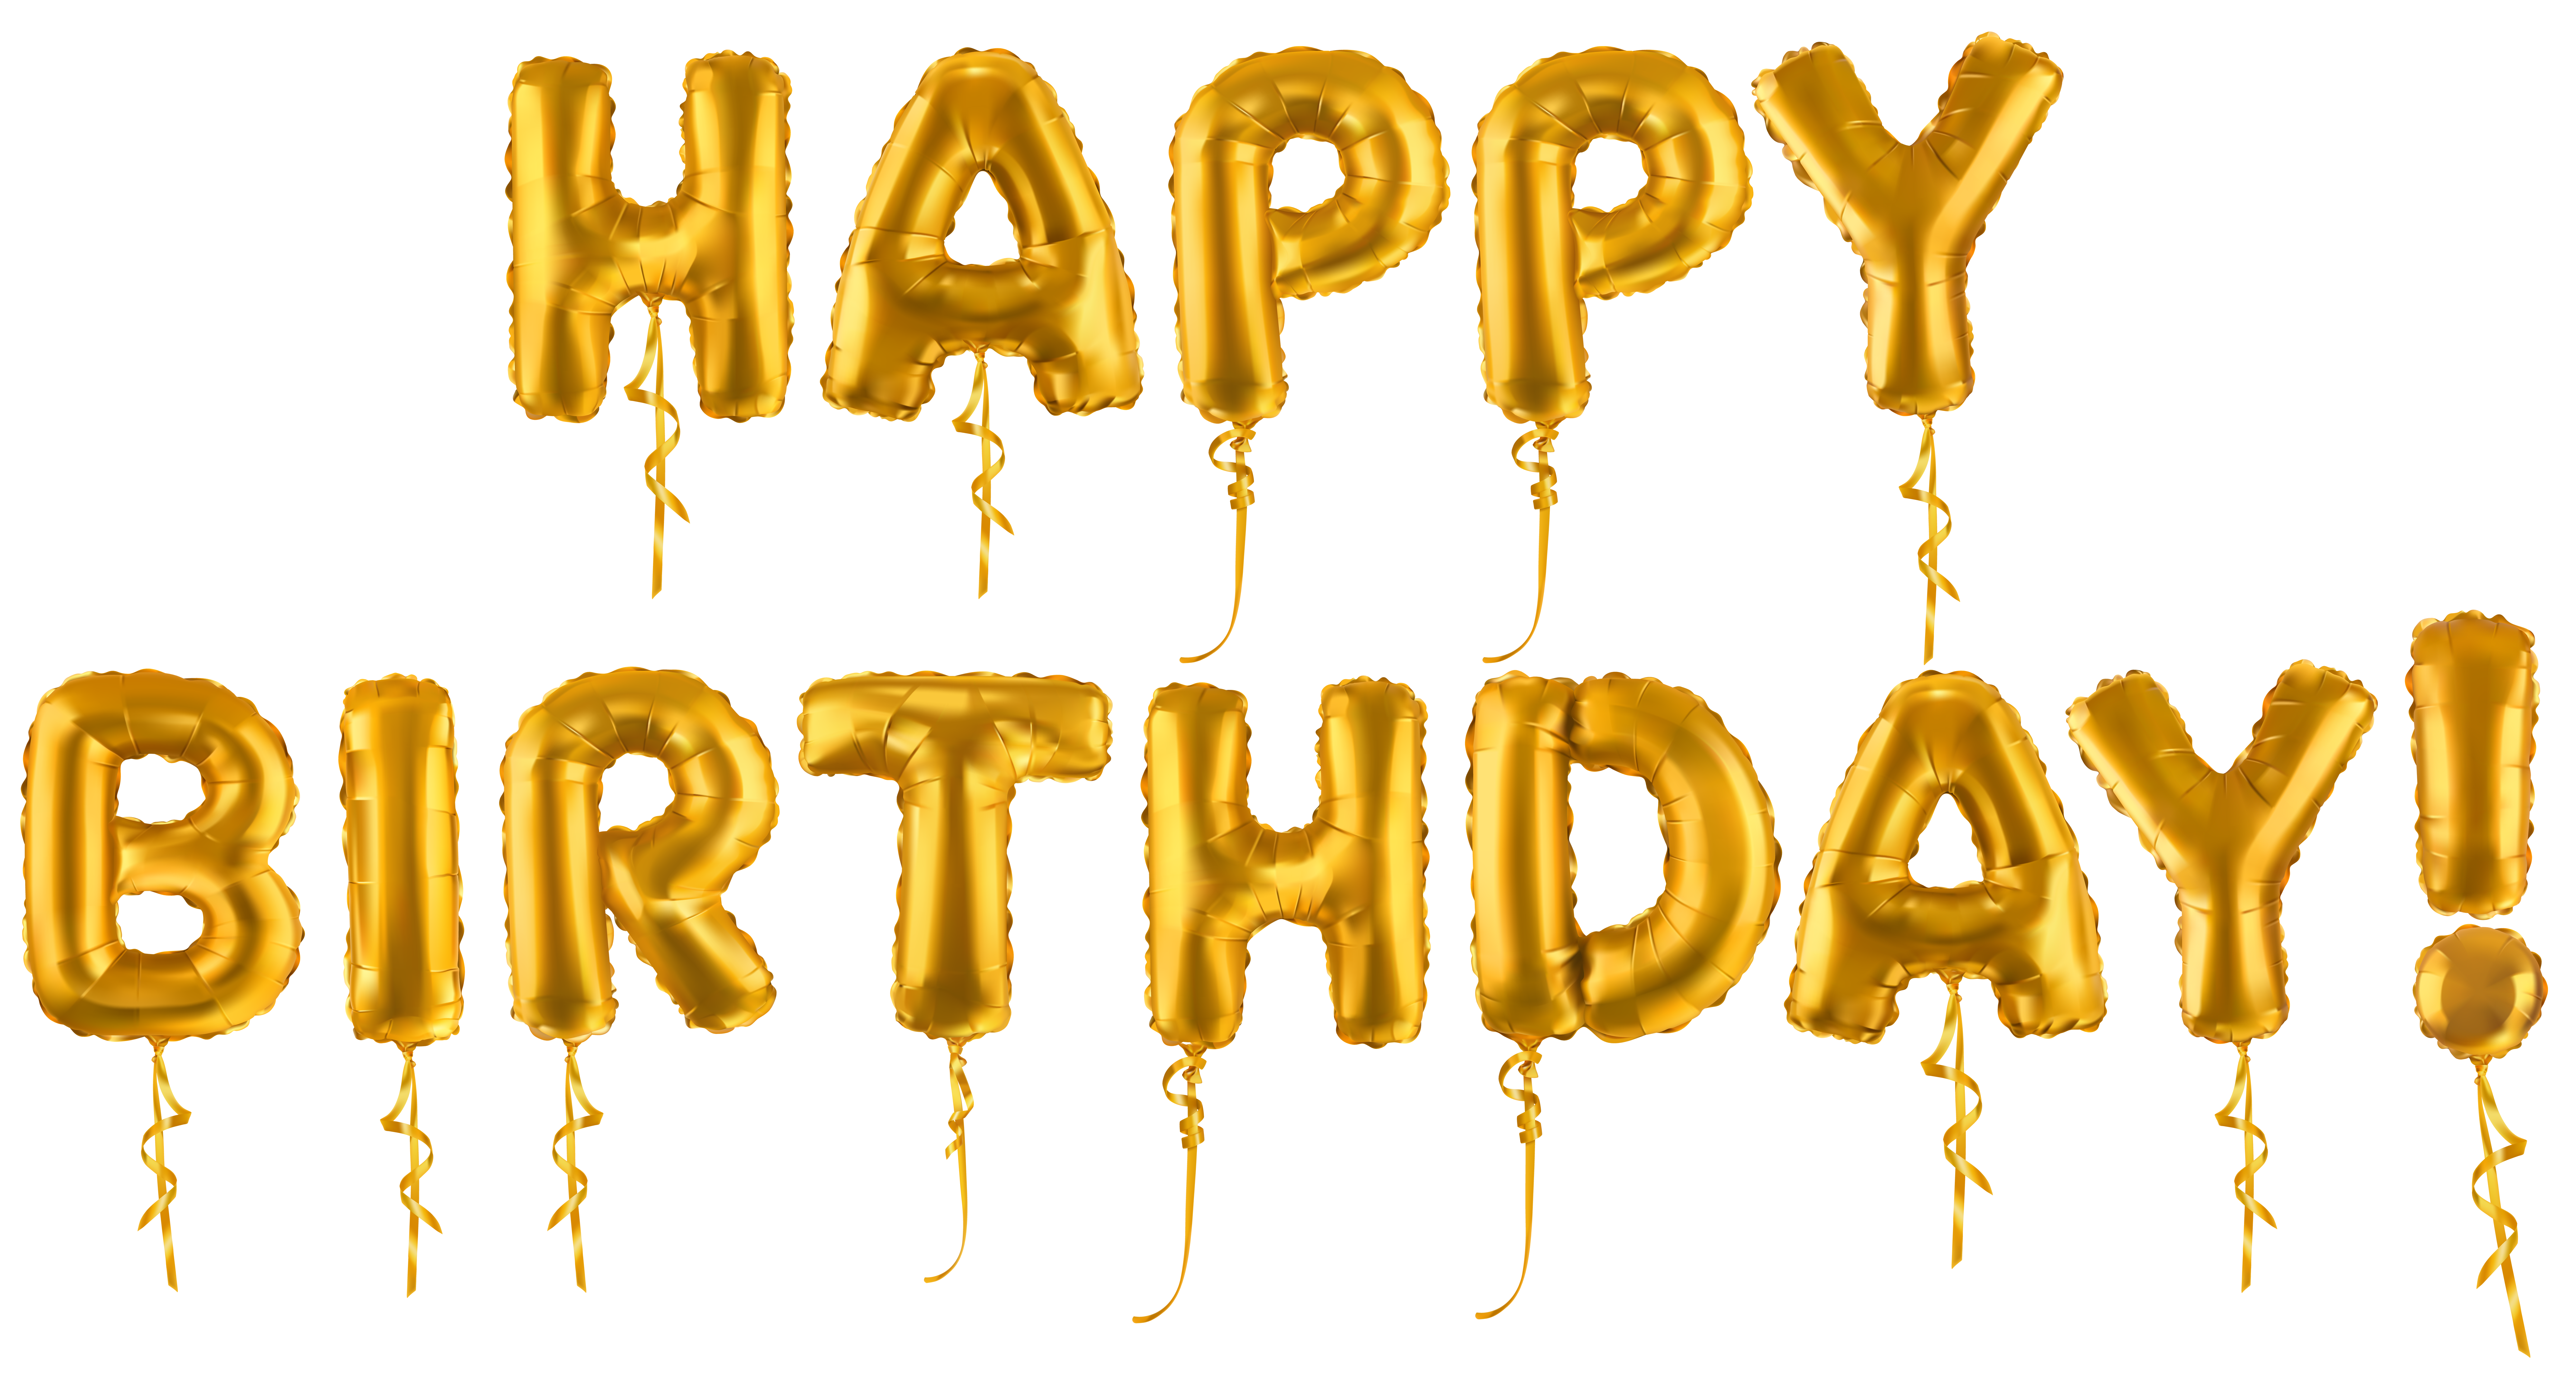 Happy Birthday Gold Balloons Text Transparent Image Gallery Yopriceville High Quality Images And Tran Balloons Text Happy Birthday Png Happy Birthday Text